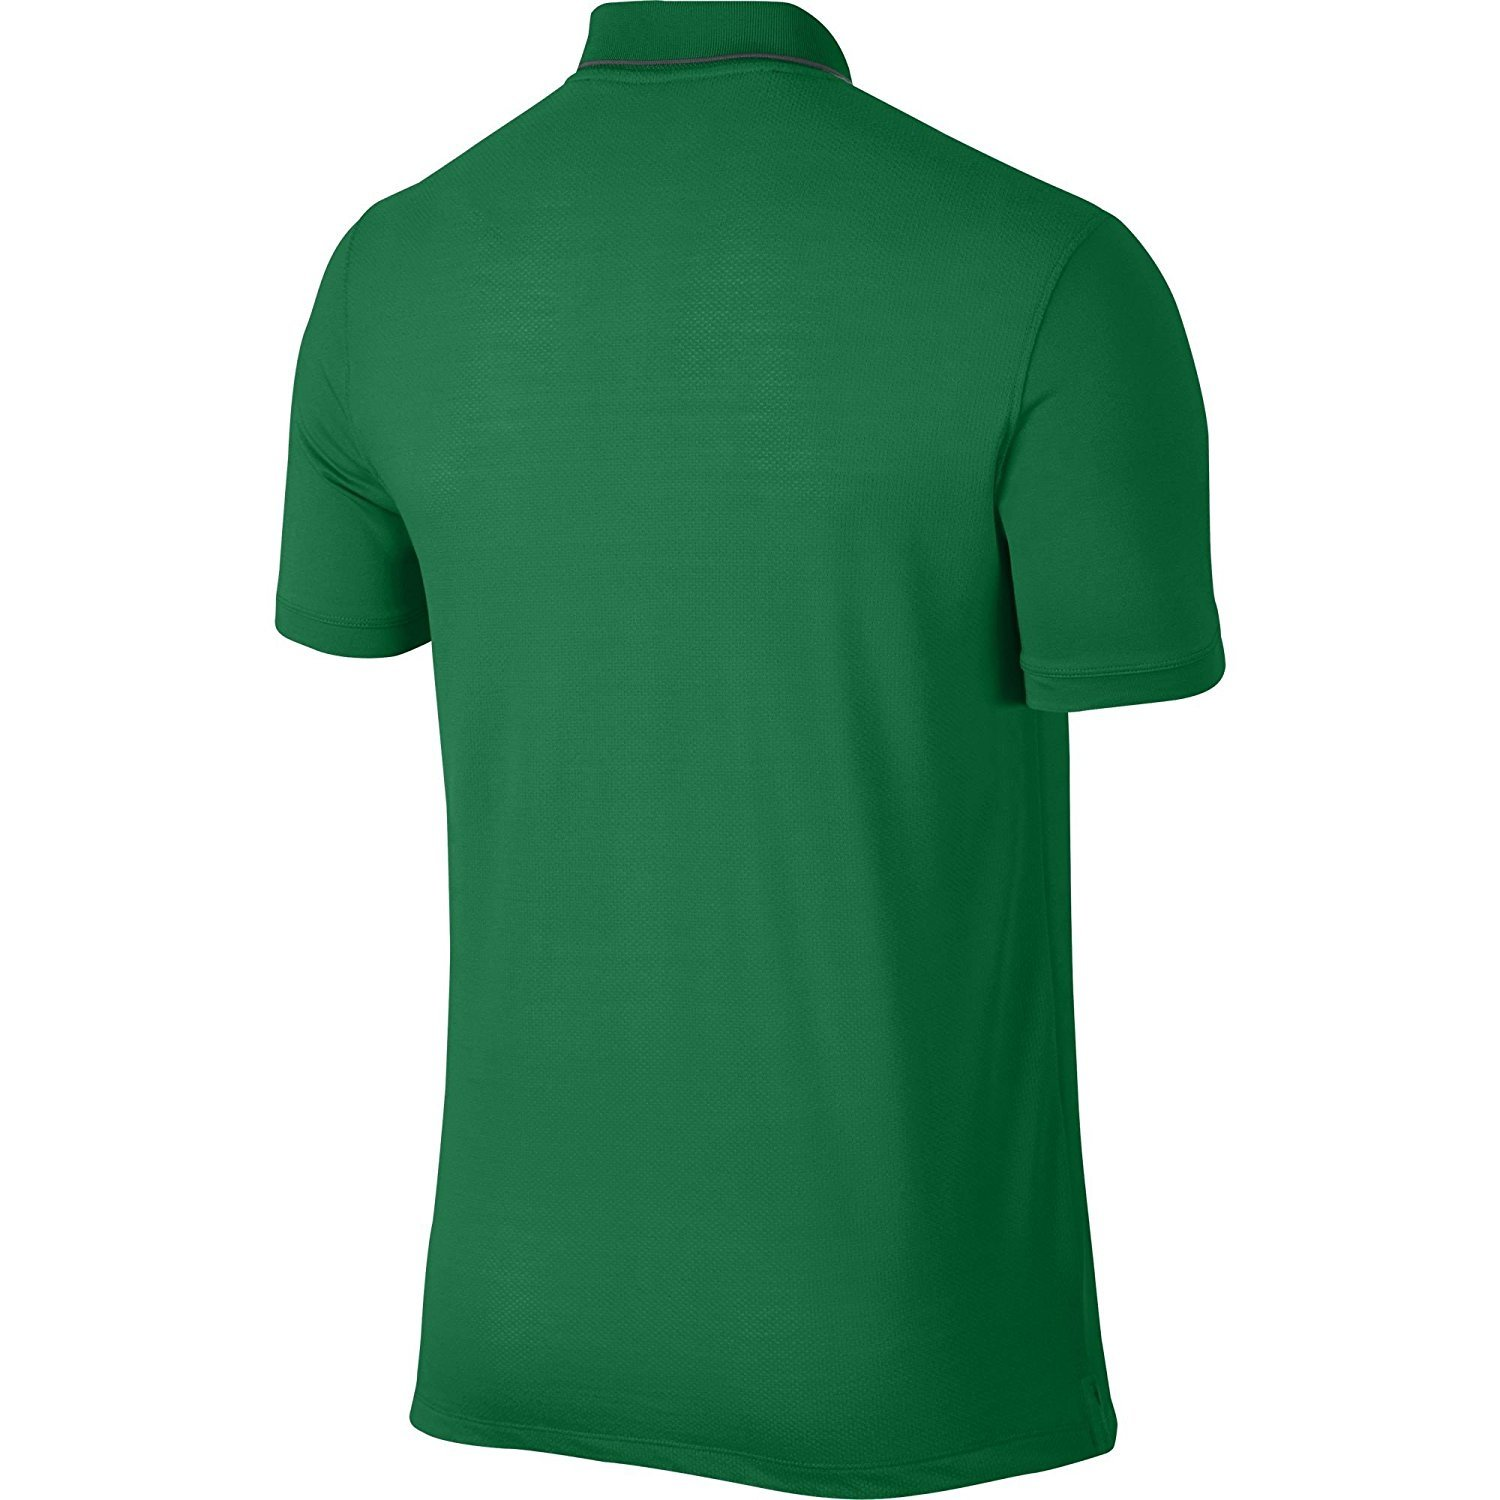 dd0407d36 Amazon.com: Nike Golf CLOSEOUT TR Dry Heather Roll Polo (Lucid Green)  725541-319 (XX-Large): Clothing